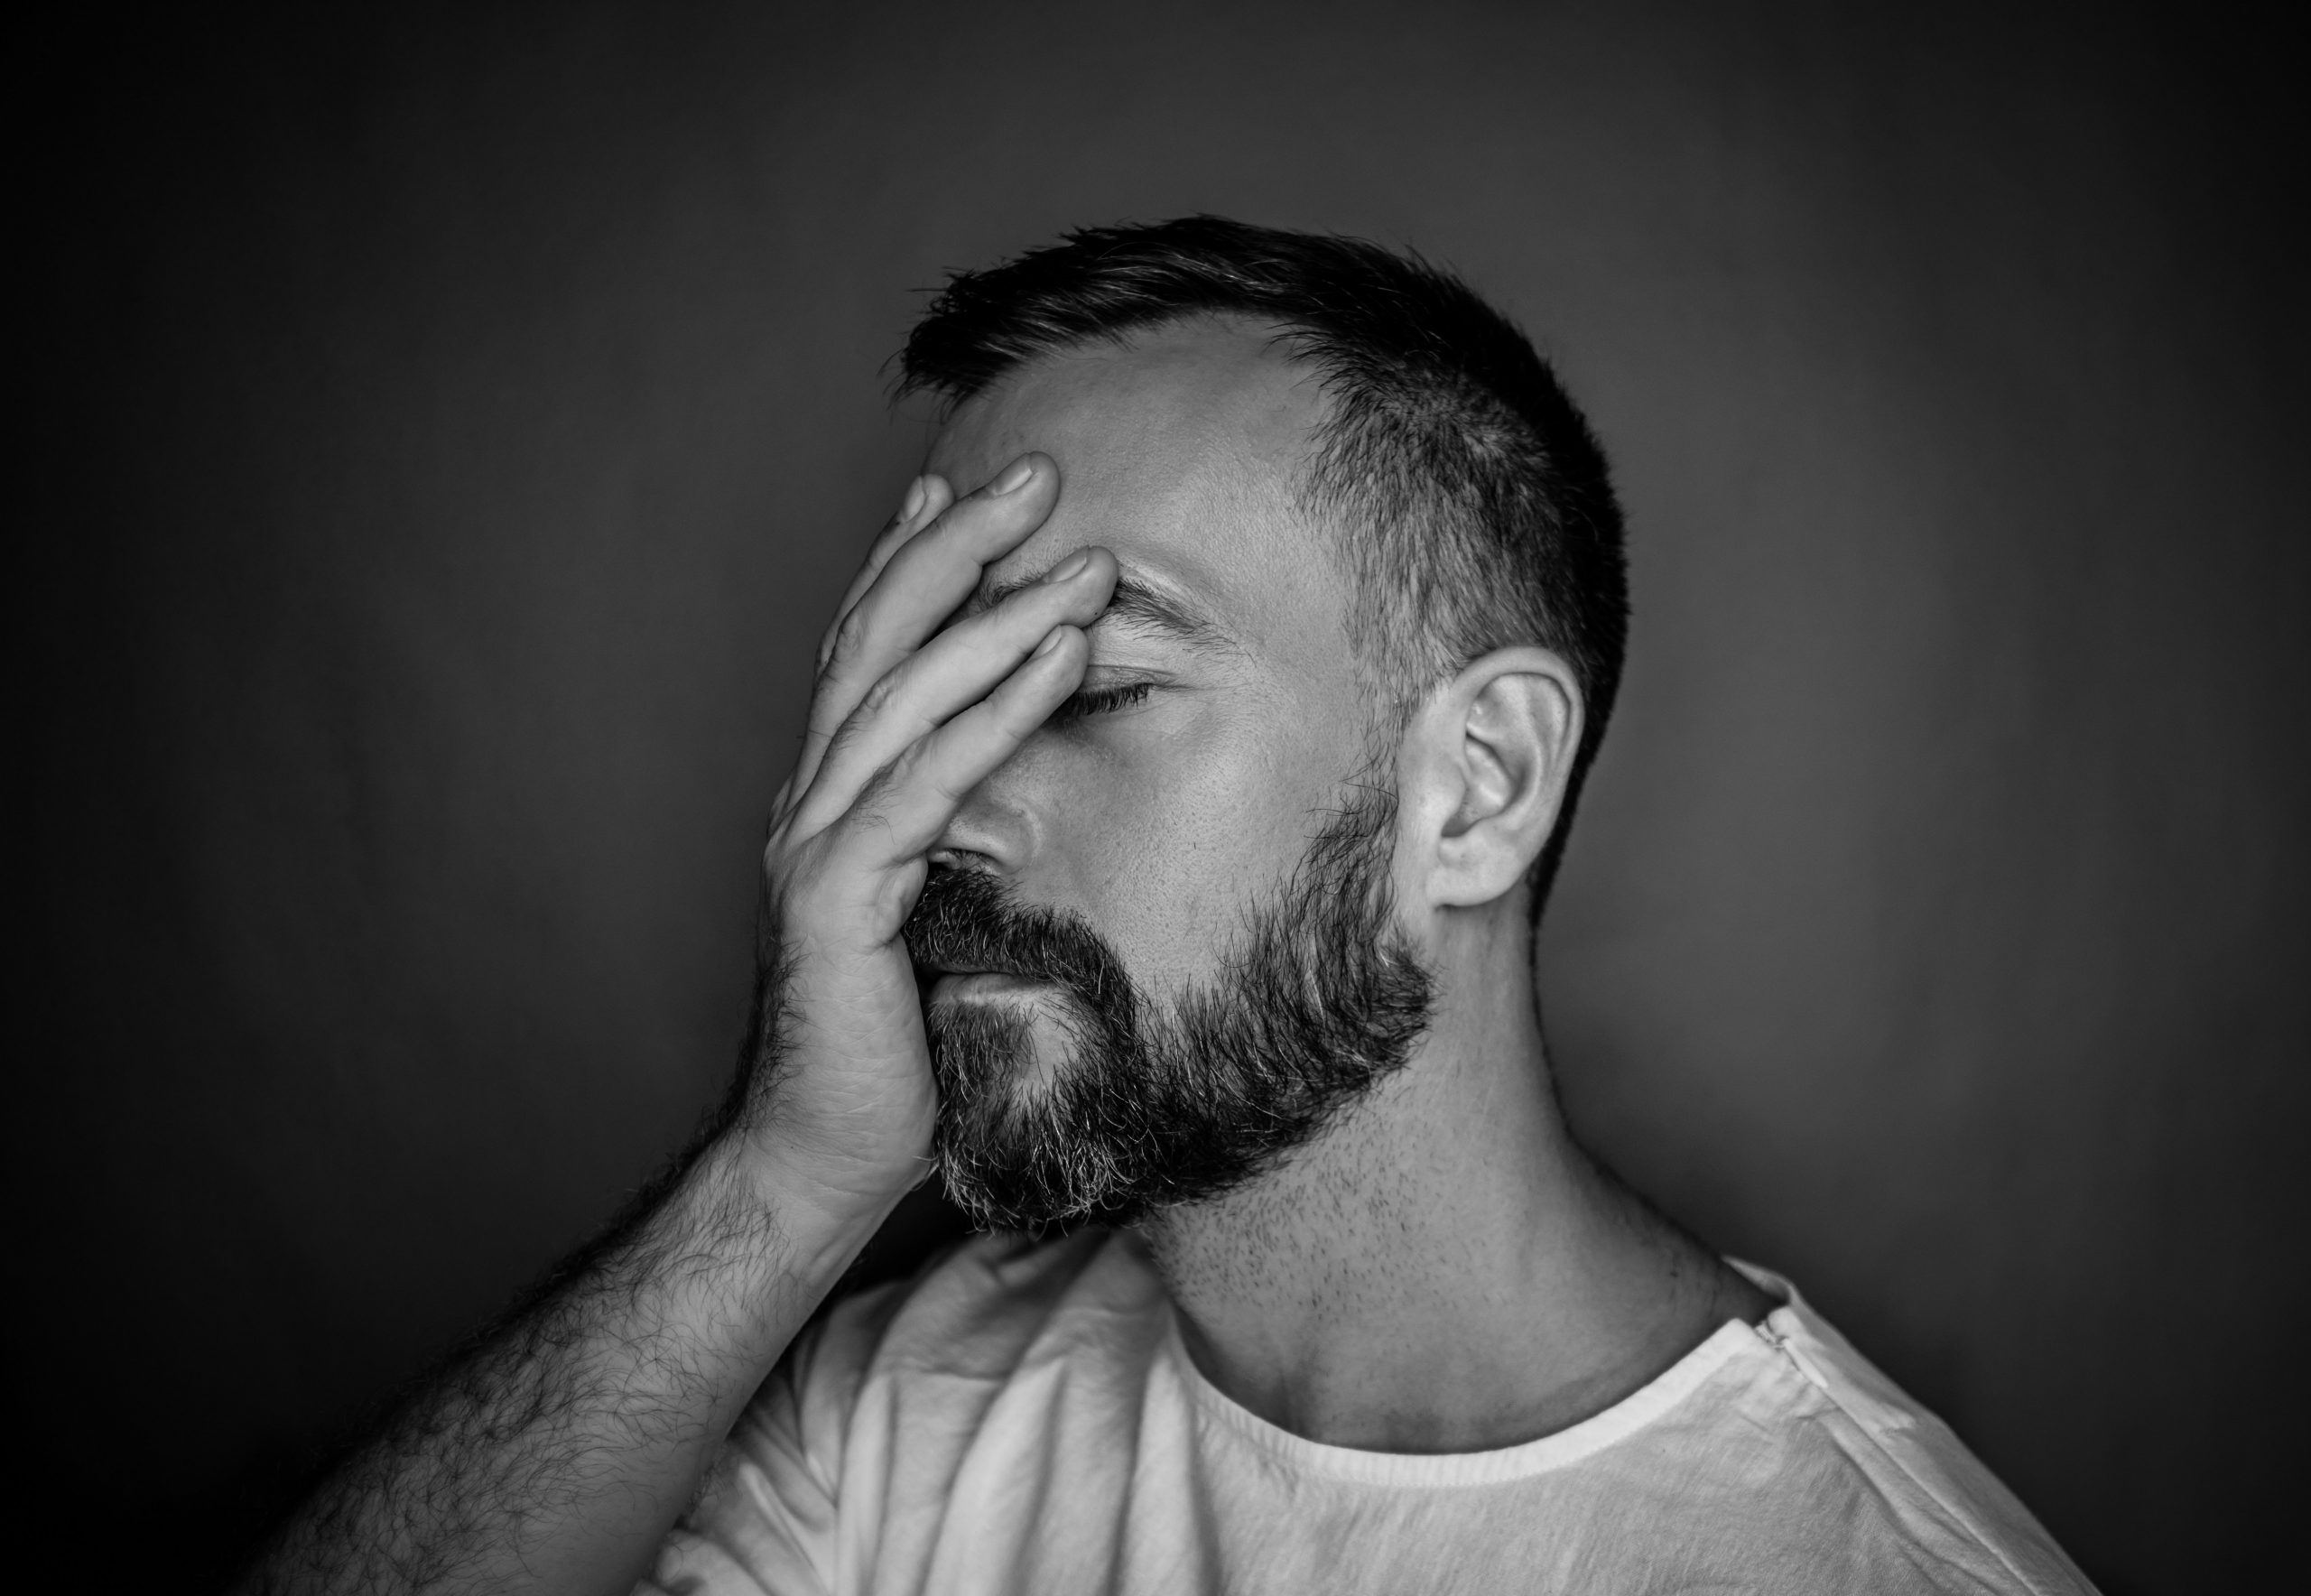 Are you unable to work and concentrate properly? It might be Brain Fog: mental fatigue 1 - Daily Medicos